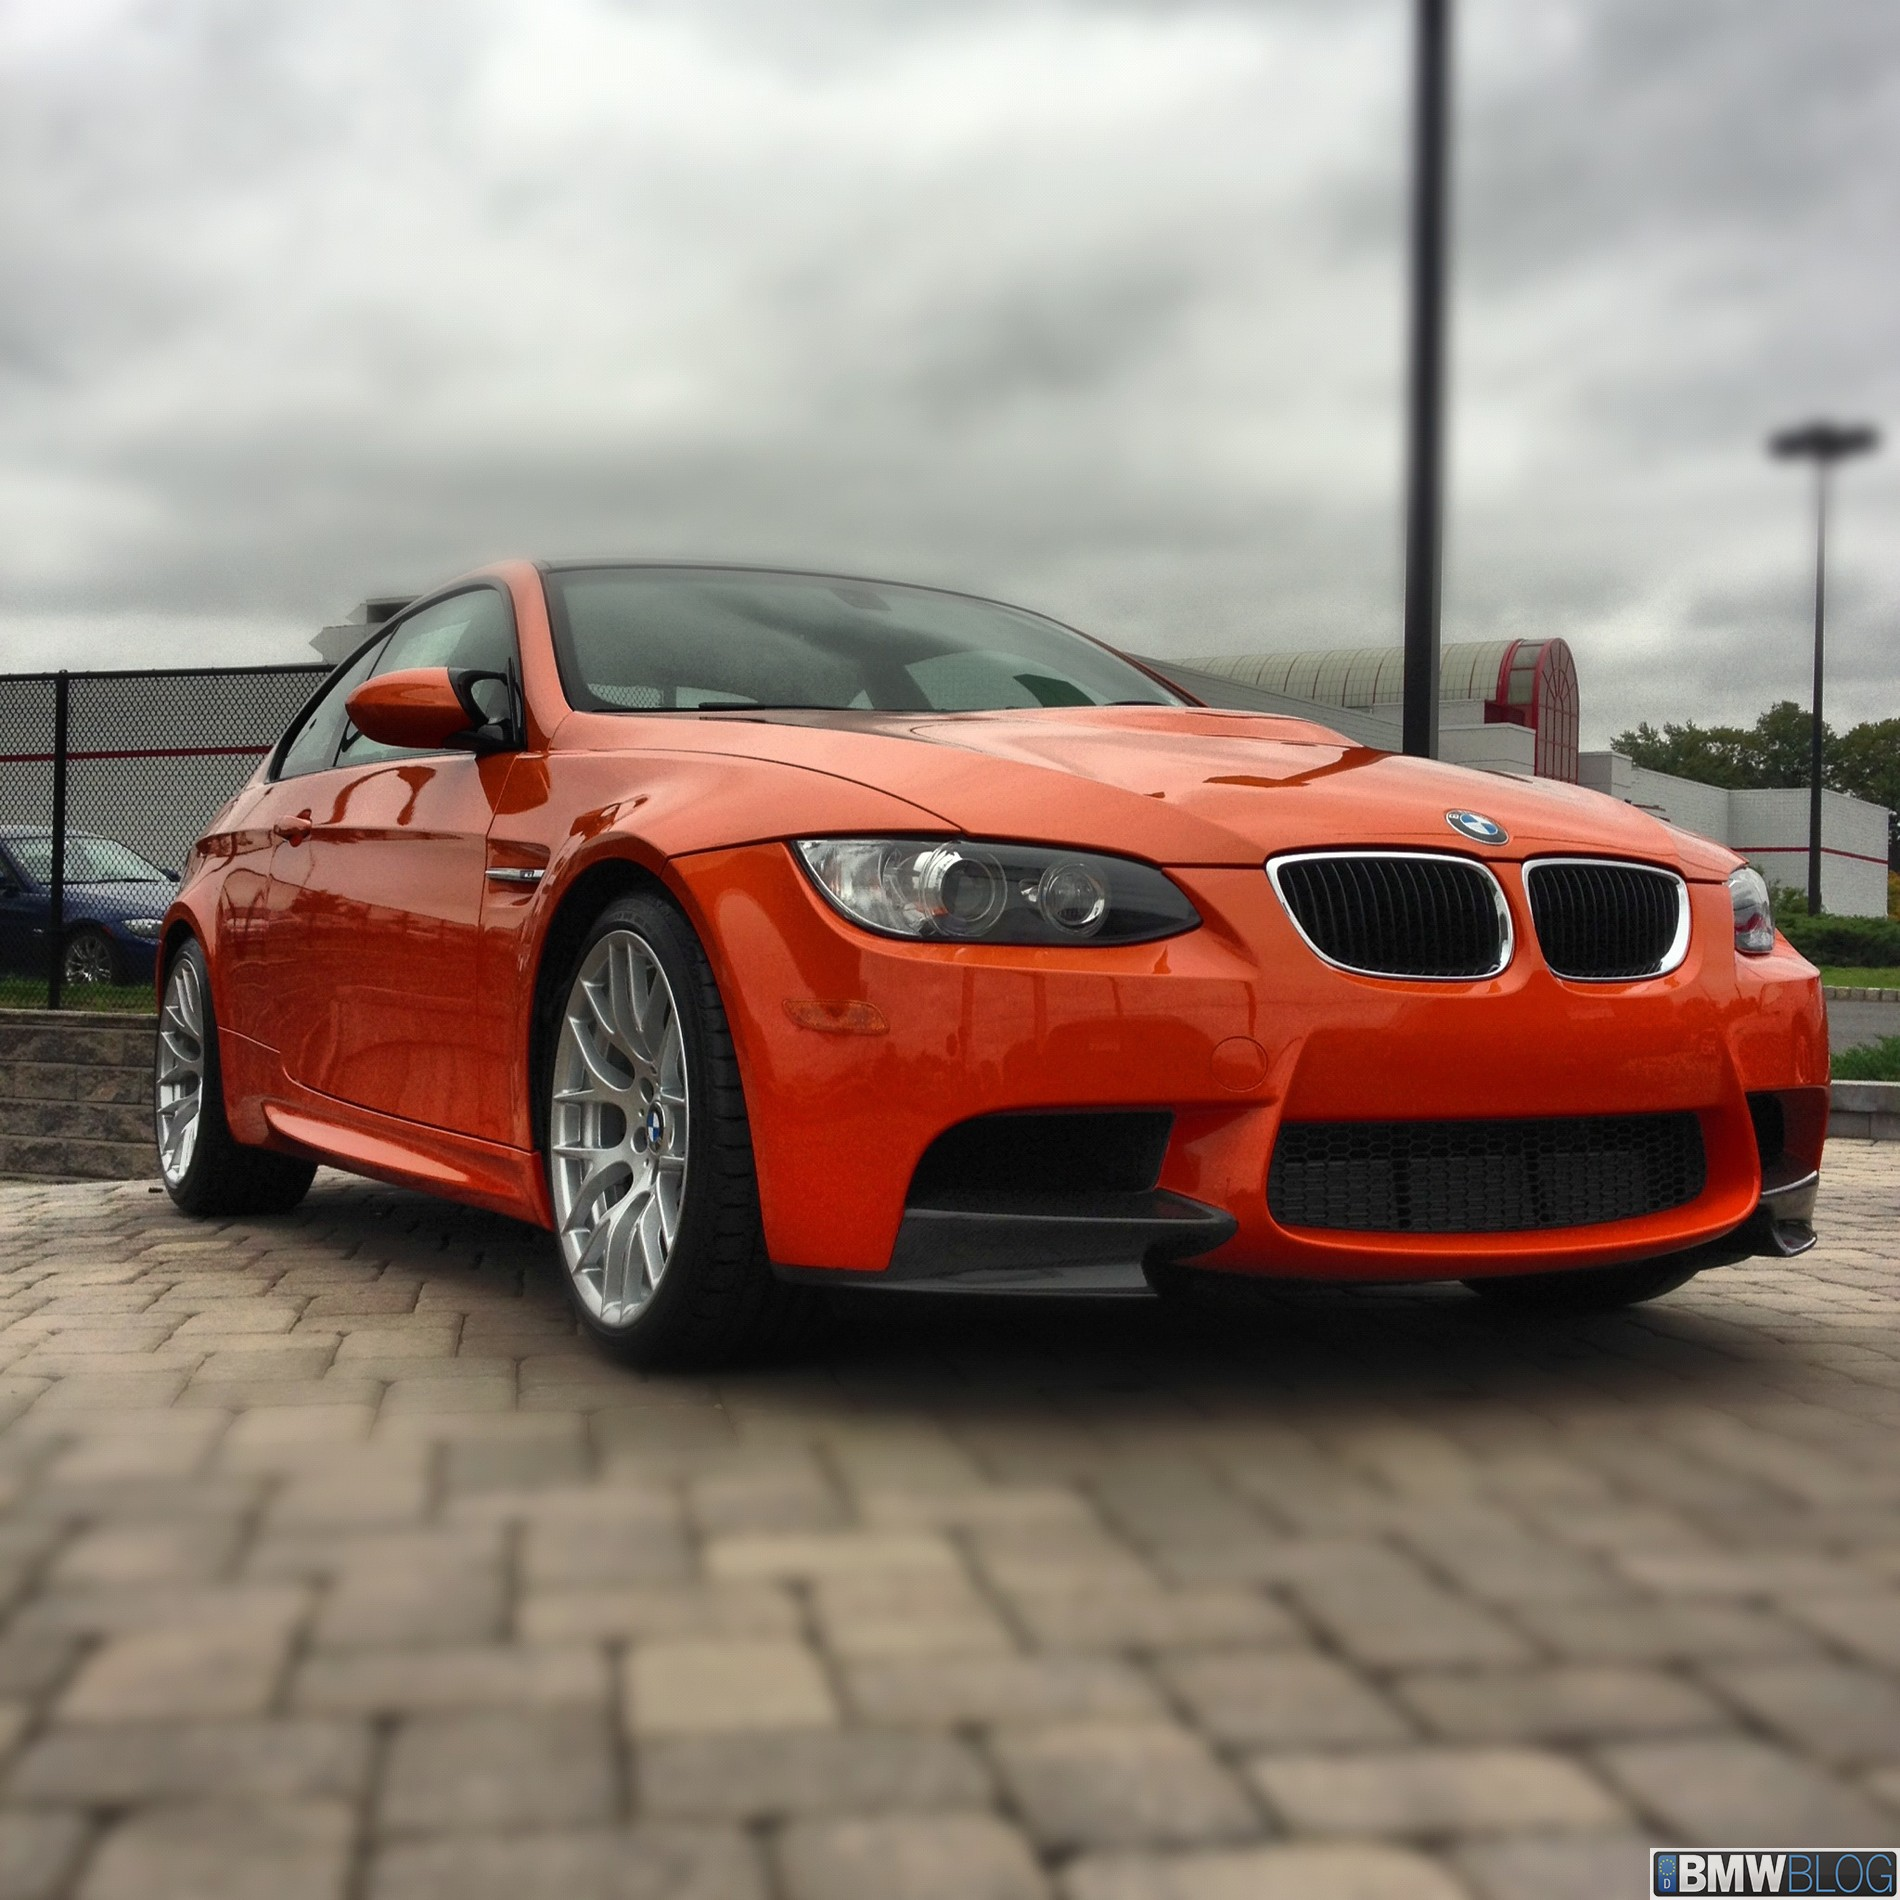 Road & Track Drives the 2013 BMW M3 Lime Rock Edition